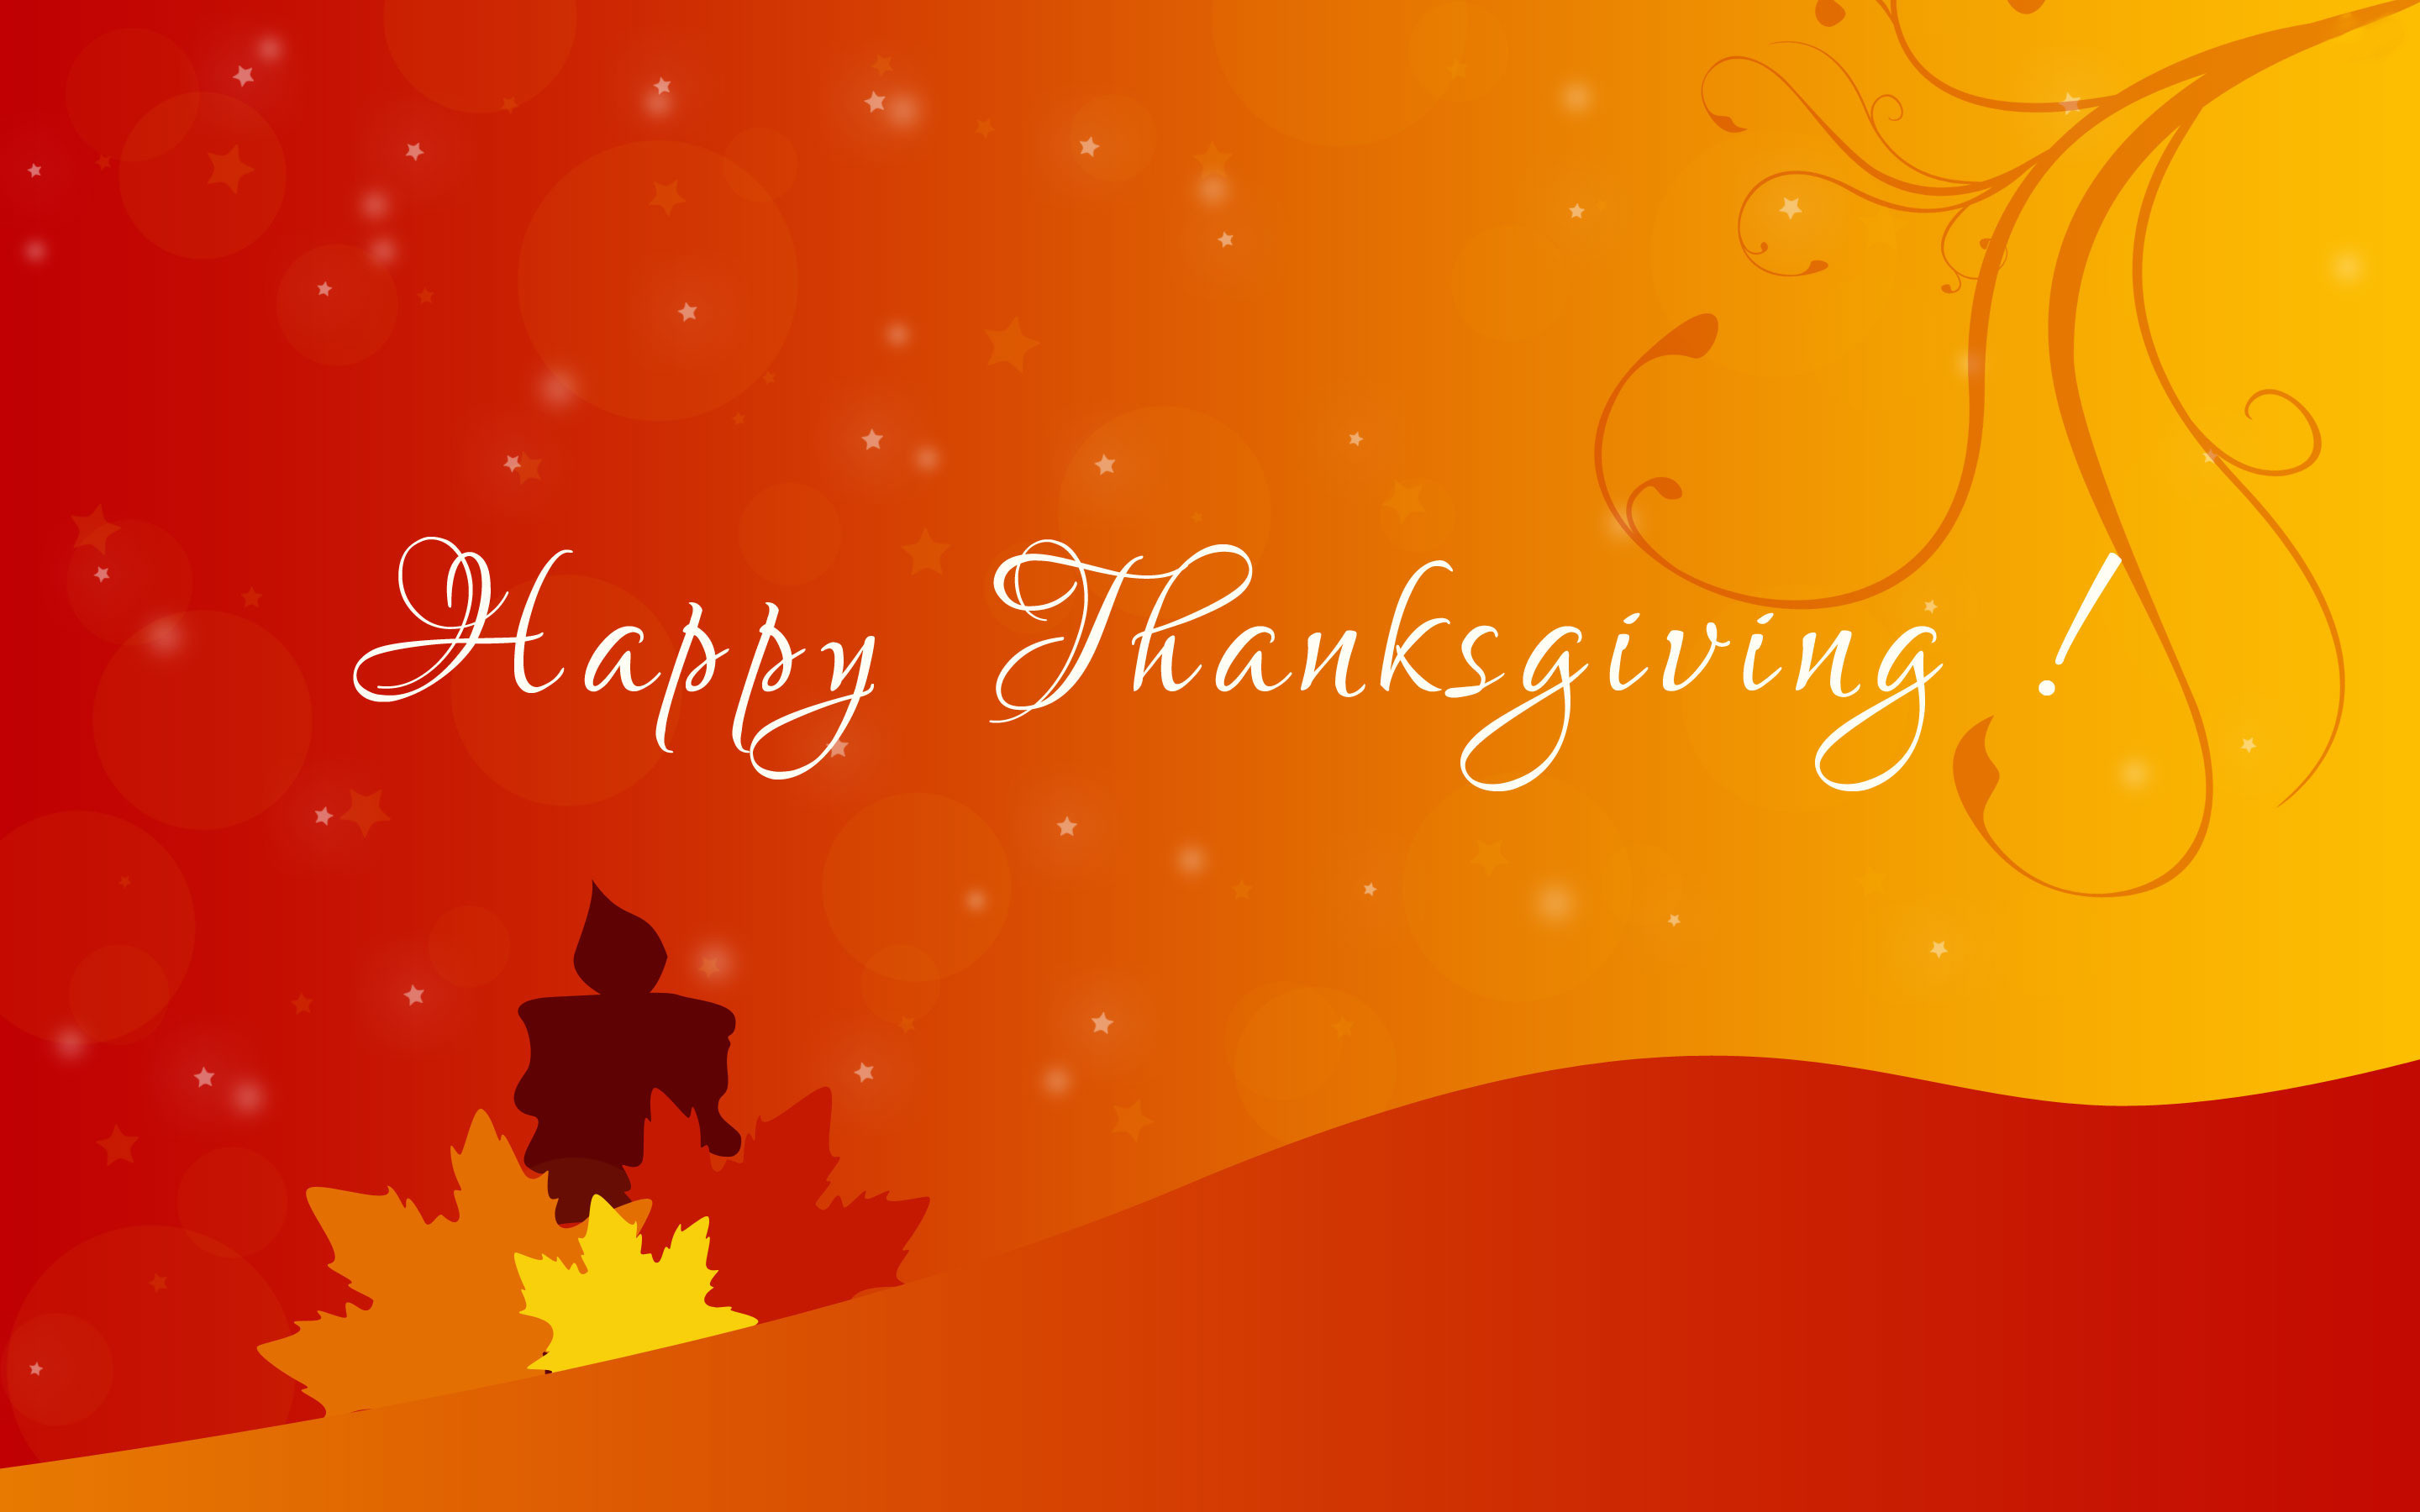 2880x1800 free thanksgiving wallpapers hd download for desktop full hd download high  definiton wallpapers colourful 4k free download wallpapers colours artwork  ...